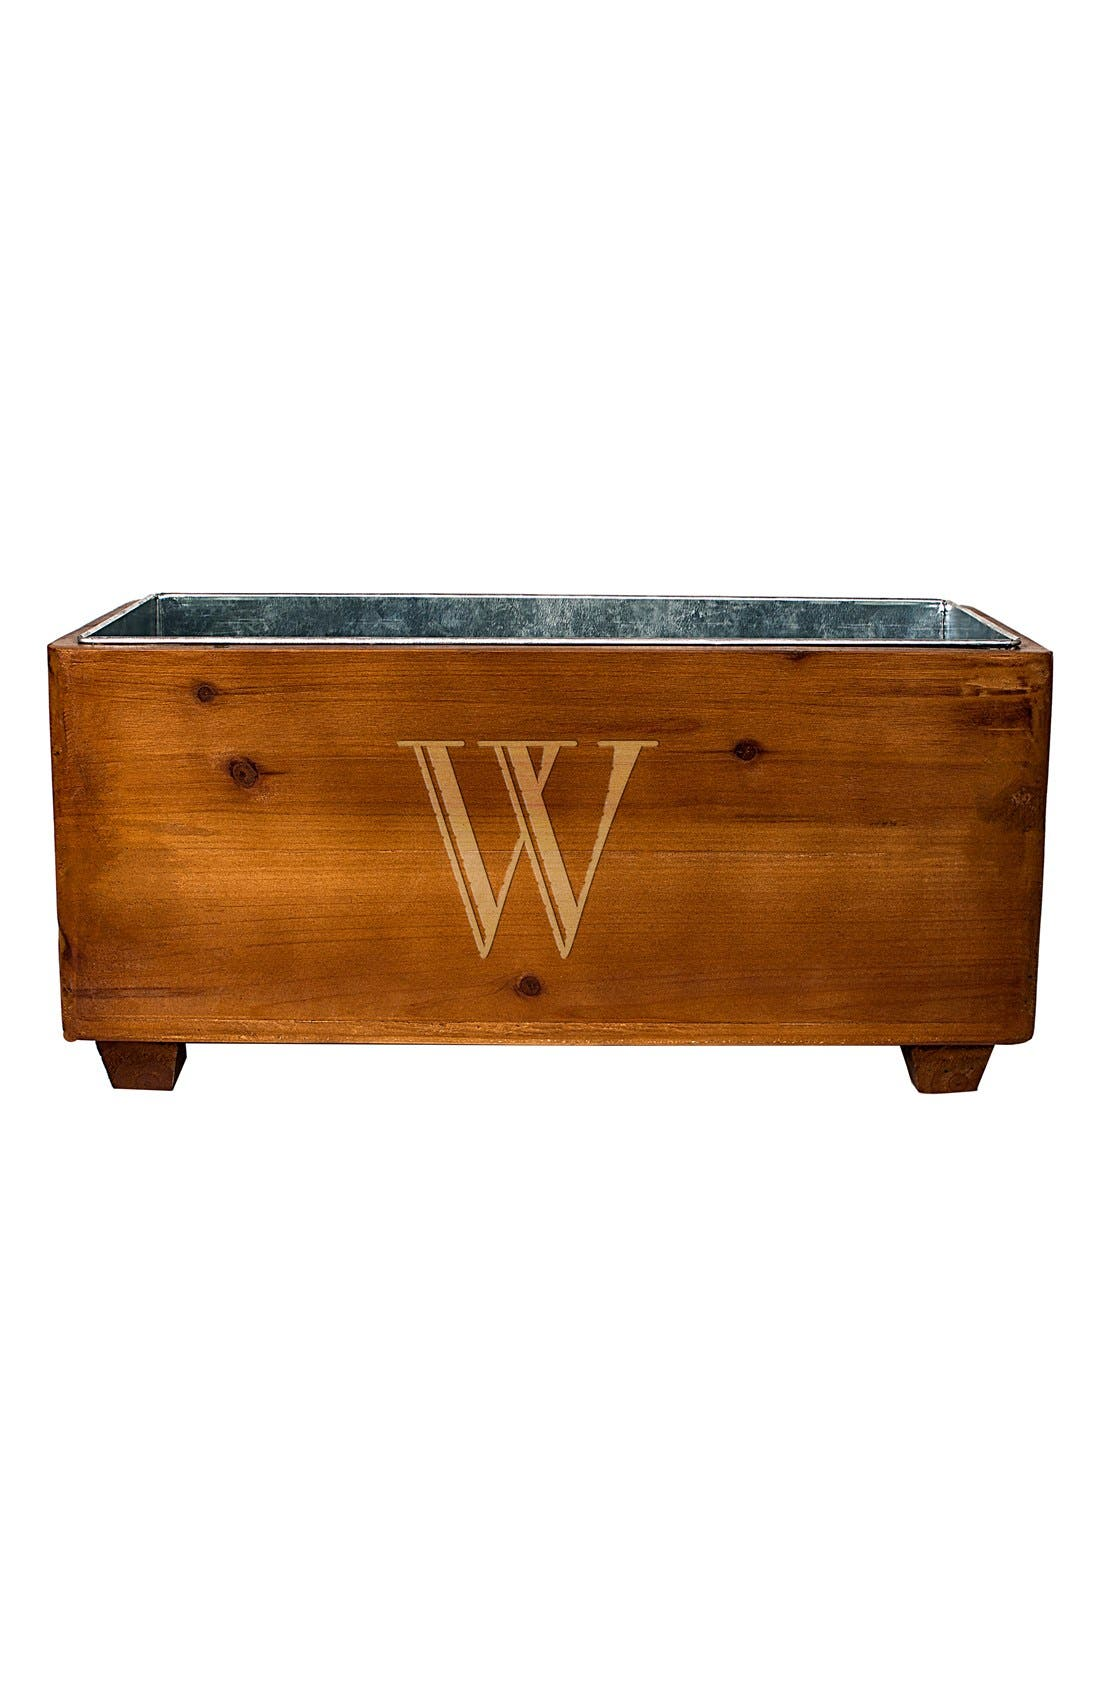 Alternate Image 1 Selected - Cathy's Concepts Monogram Wood Wine Trough